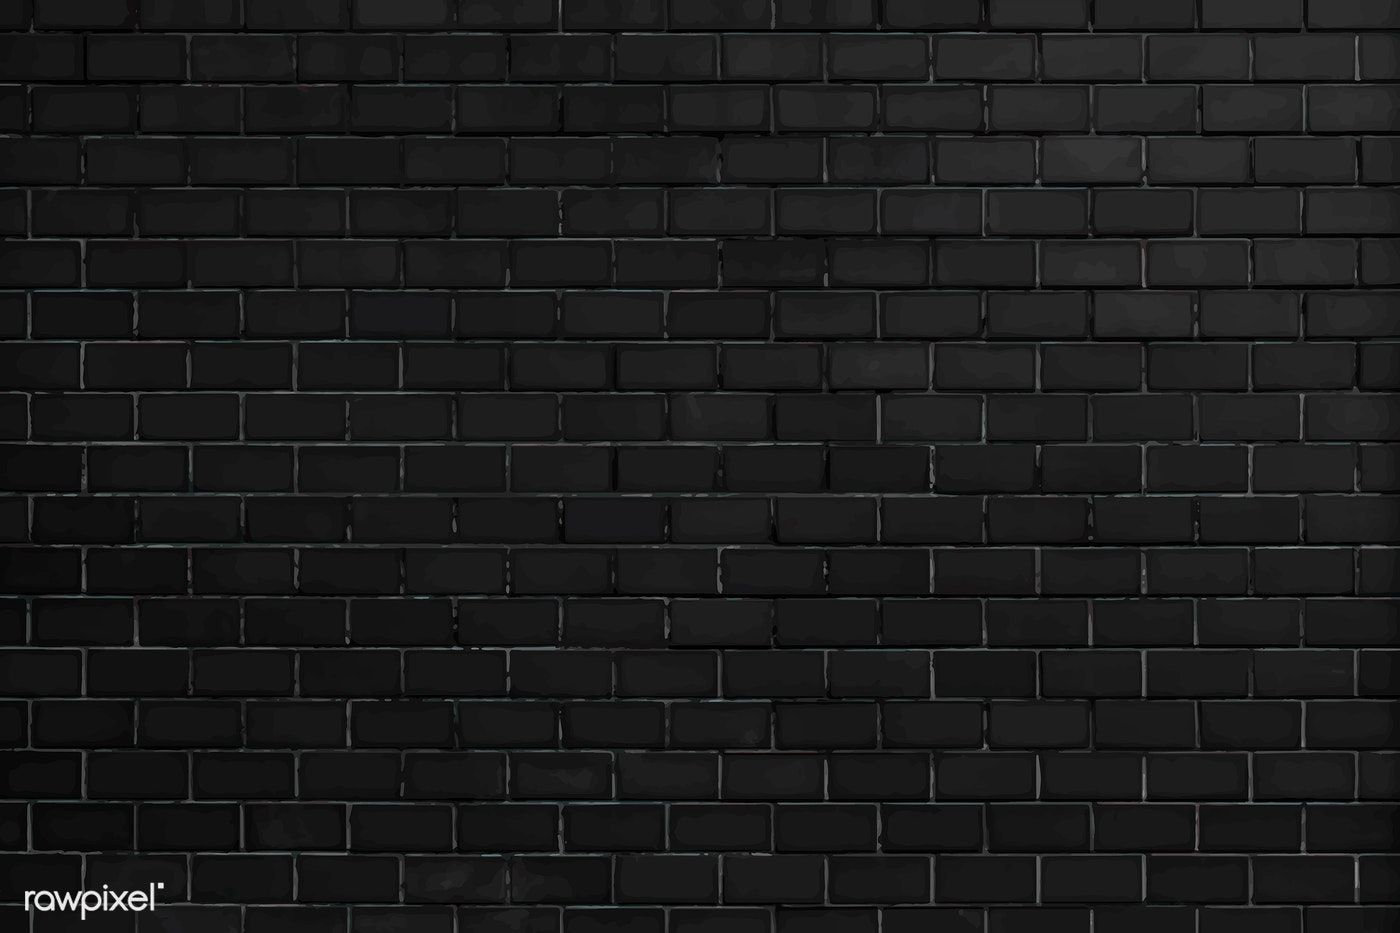 Haokhome Modern Faux Brick Wallpaper Black White 3d Textured Stone Paper Rolls Living Room Bedroom Faux Brick Wallpaper Brick Wallpaper Brick Wallpaper Bedroom